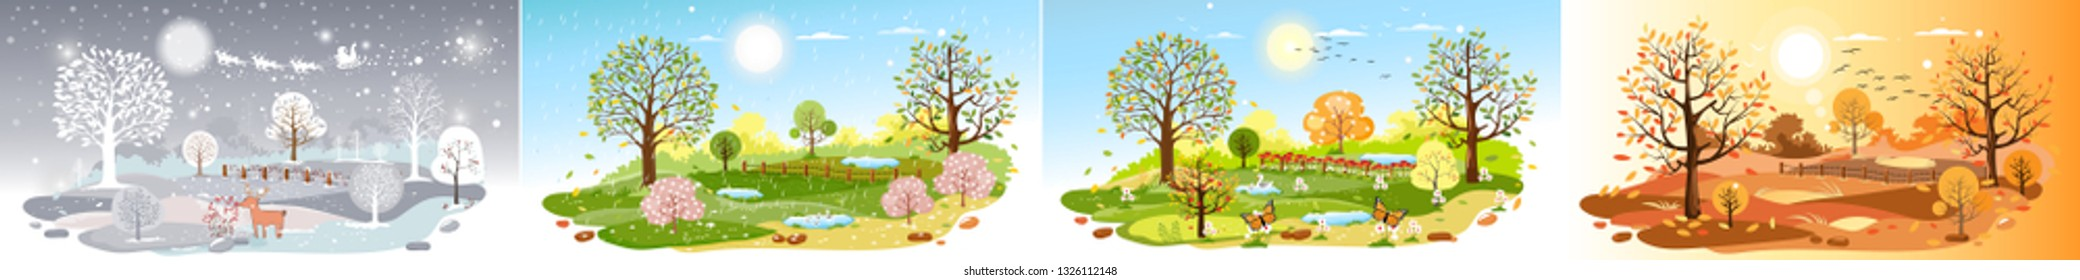 Panorama landscape natural backgrounds of four seasons. Winter wonderland, Rainy on Spring,Hot sunny day on summer, Autumn with leaves falling.Set cartoon flat design 4 seasons background illustration